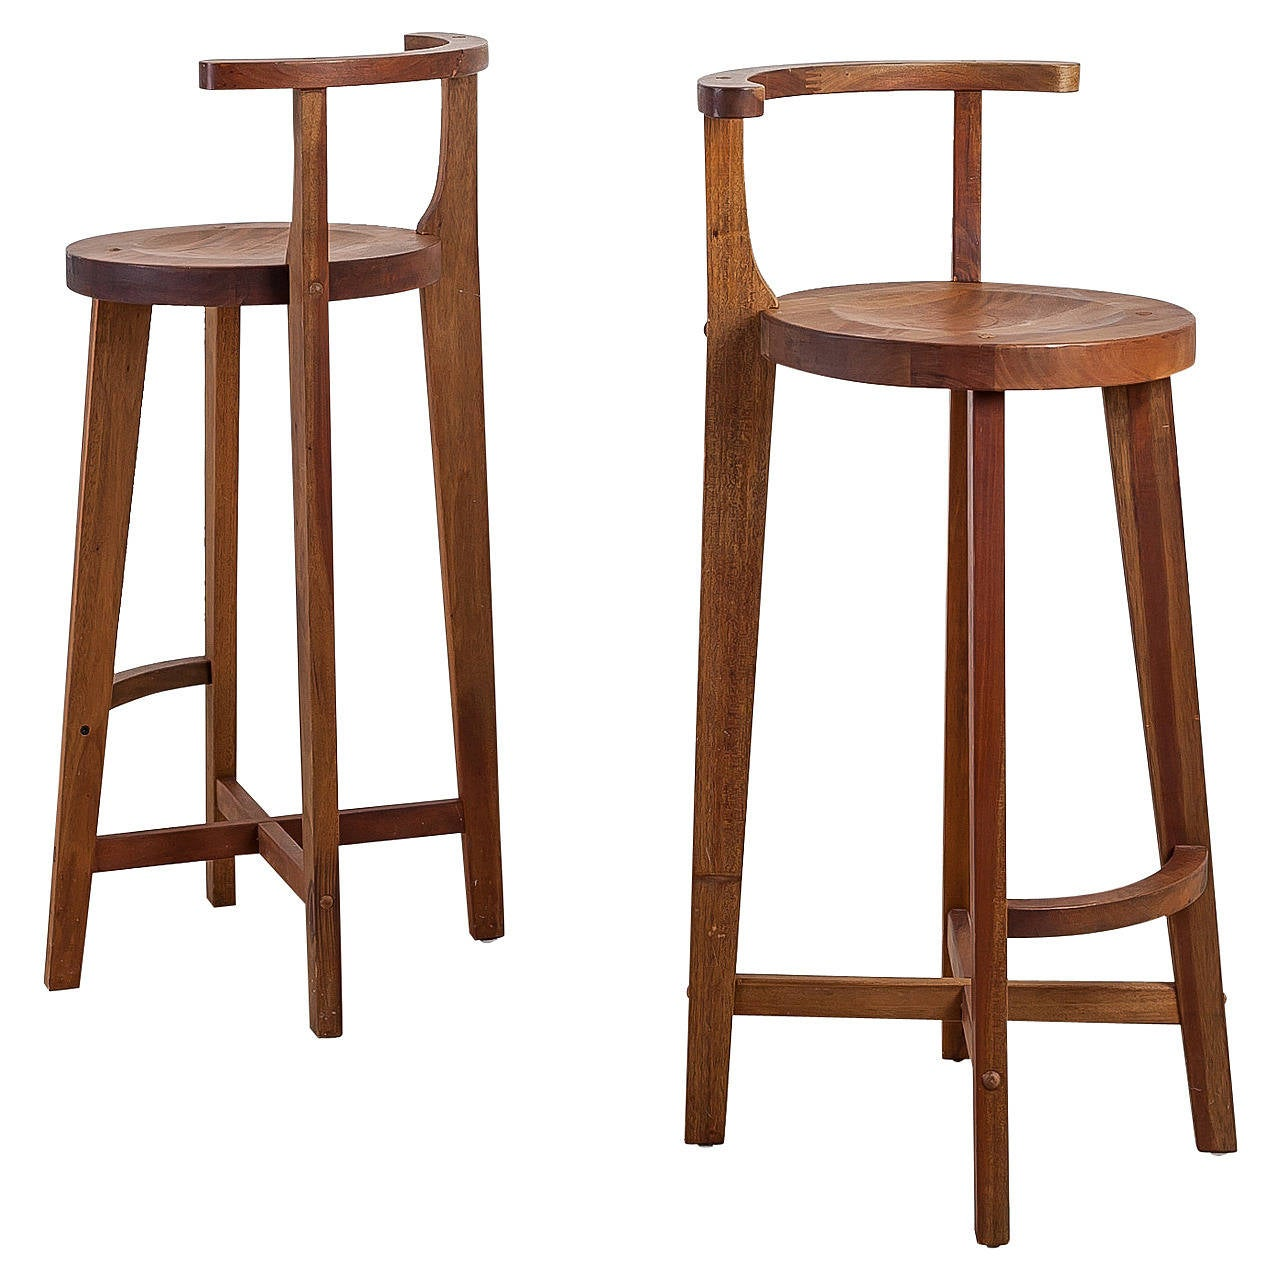 Pair Studio crafted wooden bar stools with rounded back  : 2083072l from www.1stdibs.com size 1280 x 1280 jpeg 131kB